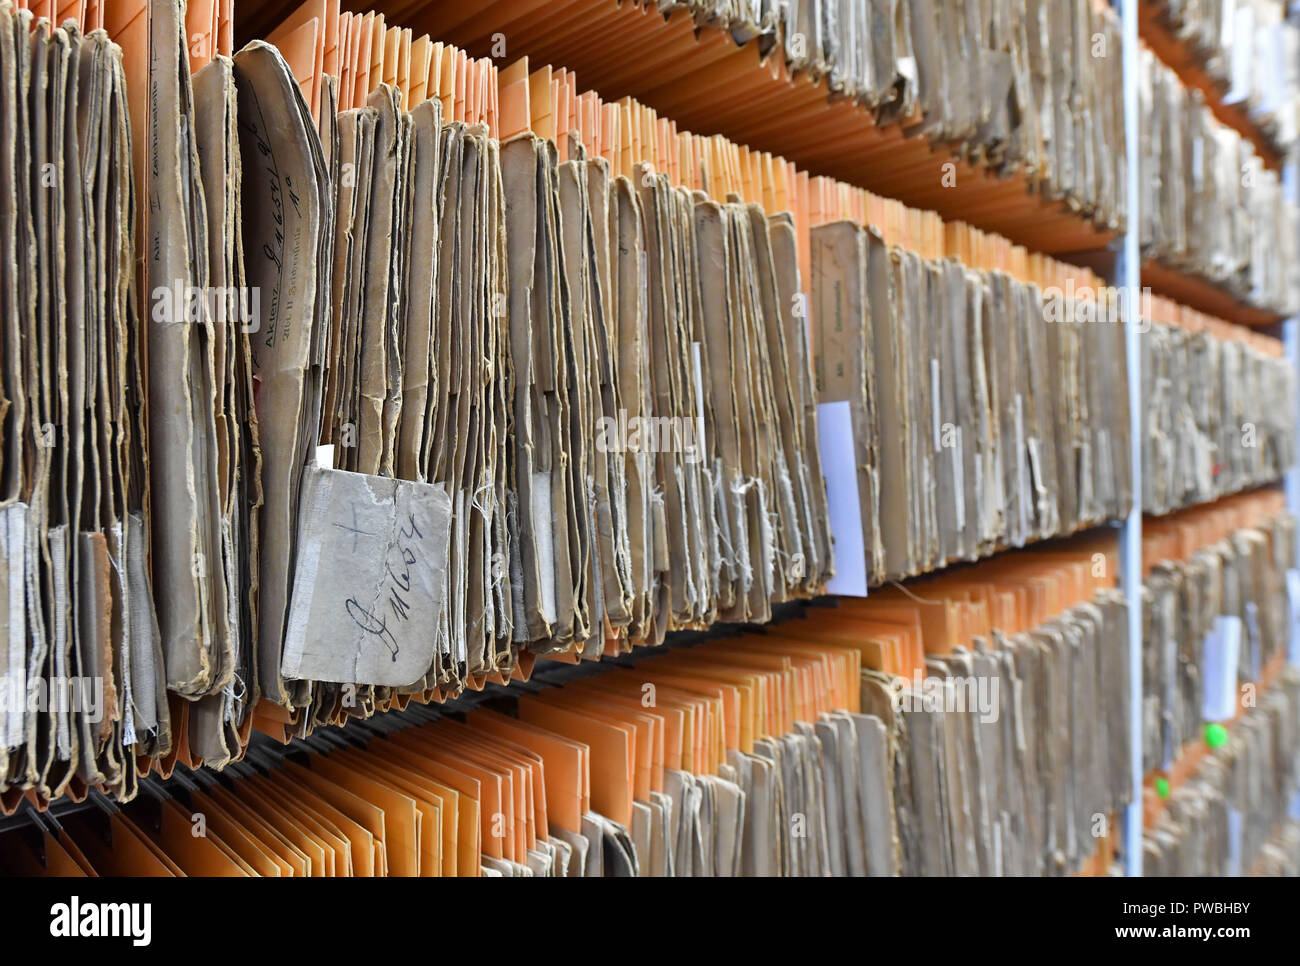 15 October 2018, Thuringia, Jena: Files hang on a shelf in the historical examiner's room of the Jena office of the German Patent and Trade Mark Office. The East German branch of the Patent Office in Munich has been in existence for 20 years. The settlement was decided by the Federalism Commission in 1992. Since then, the employees have been responsible for design protection and, together with Munich, for trademark protection. The branch currently employs a total of 229 civil servants and employees. Photo: Martin Schutt/dpa-Zentralbild/dpa Stock Photo